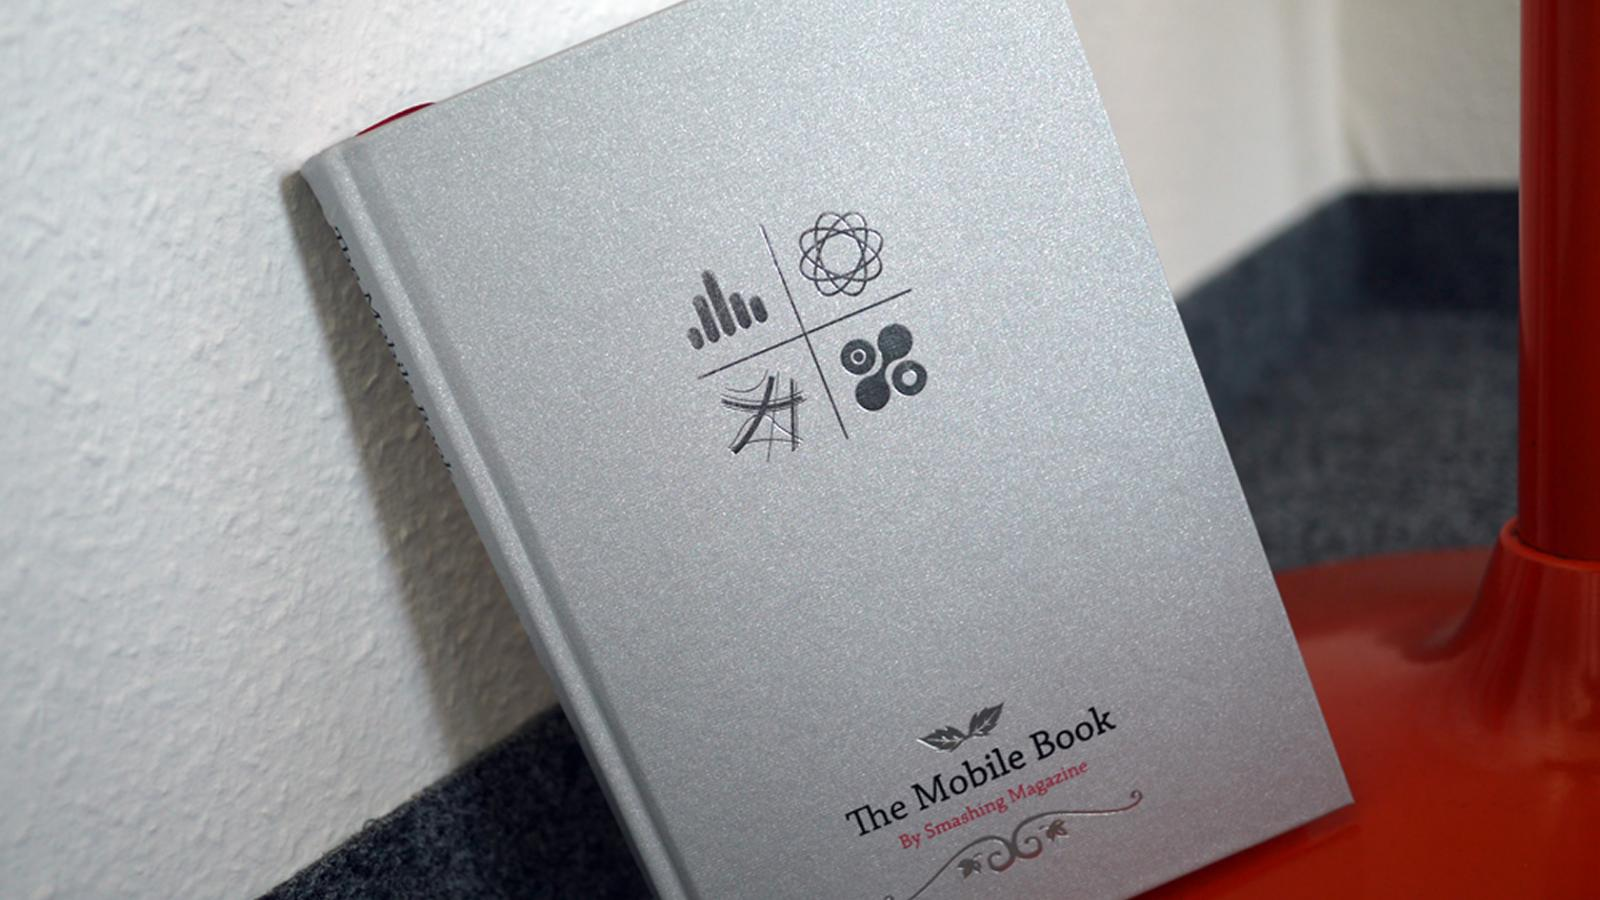 The Mobile Book by Smashing Magazine - Book Suggestion